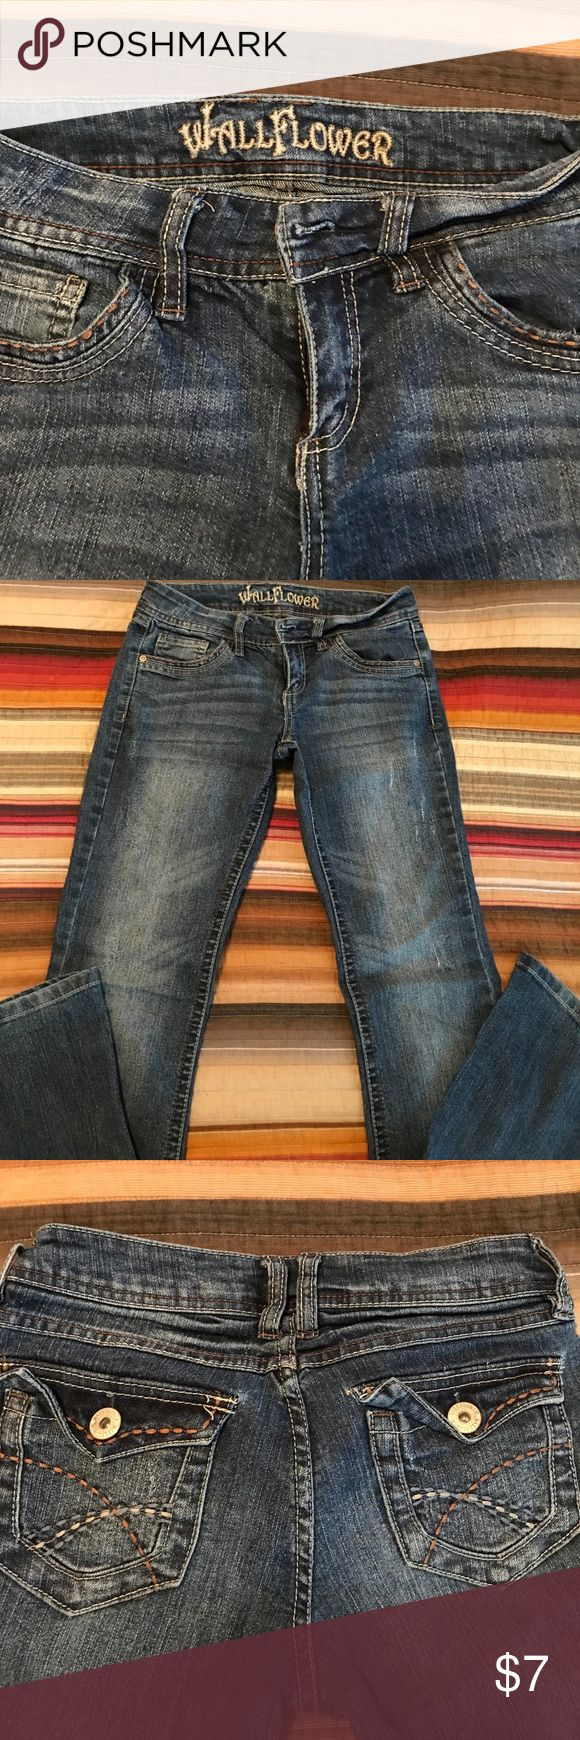 Wallflower jeans Size 5 31 inch inseam Wallflower jeans Wallflower Jeans Boot Cut